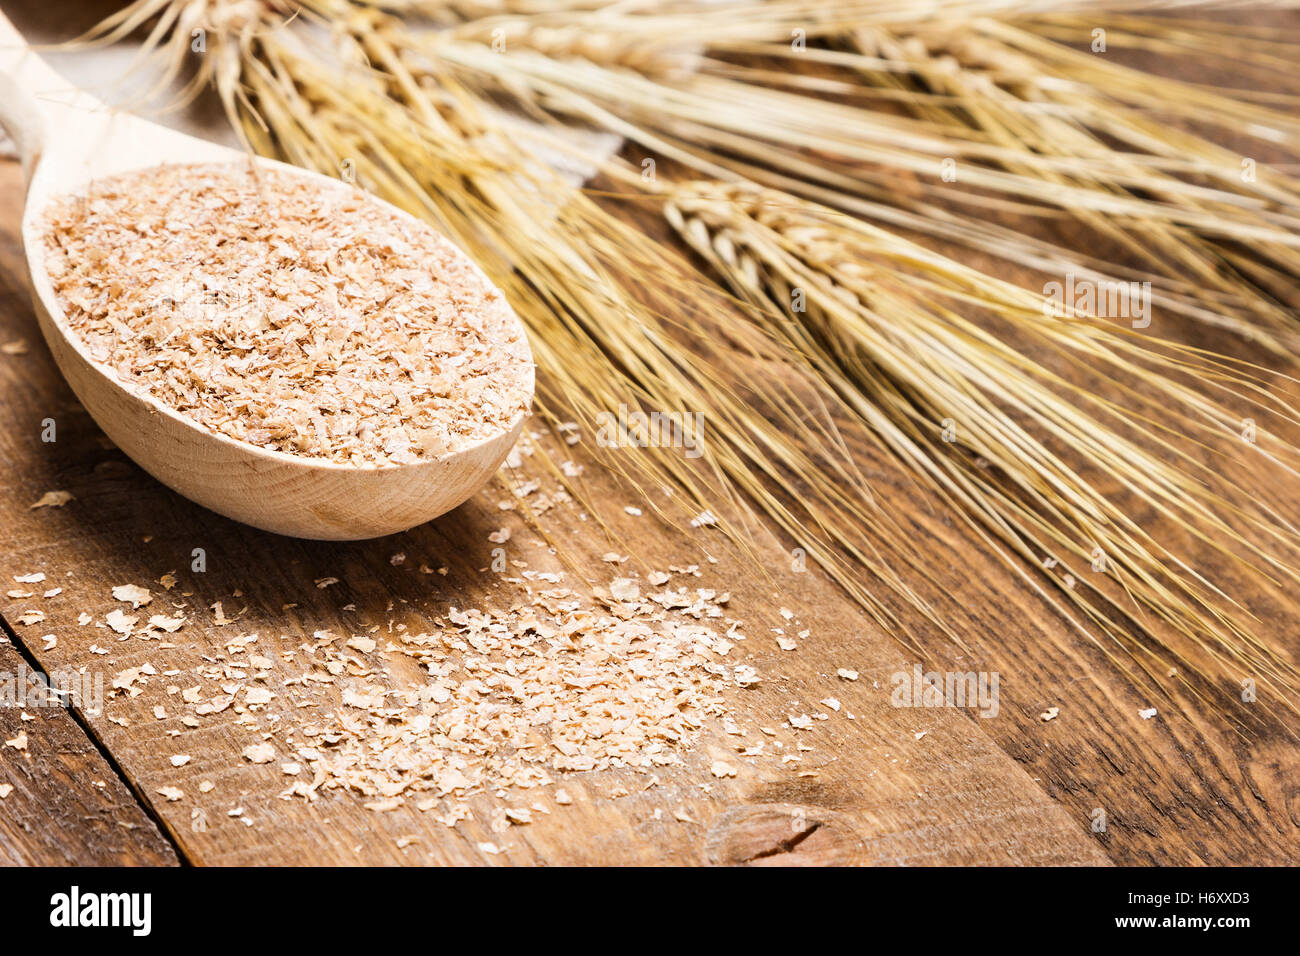 Close-up of wheat bran in wooden spoon with wheat ears. Dietary supplement to improve digestion. Source of dietary - Stock Image